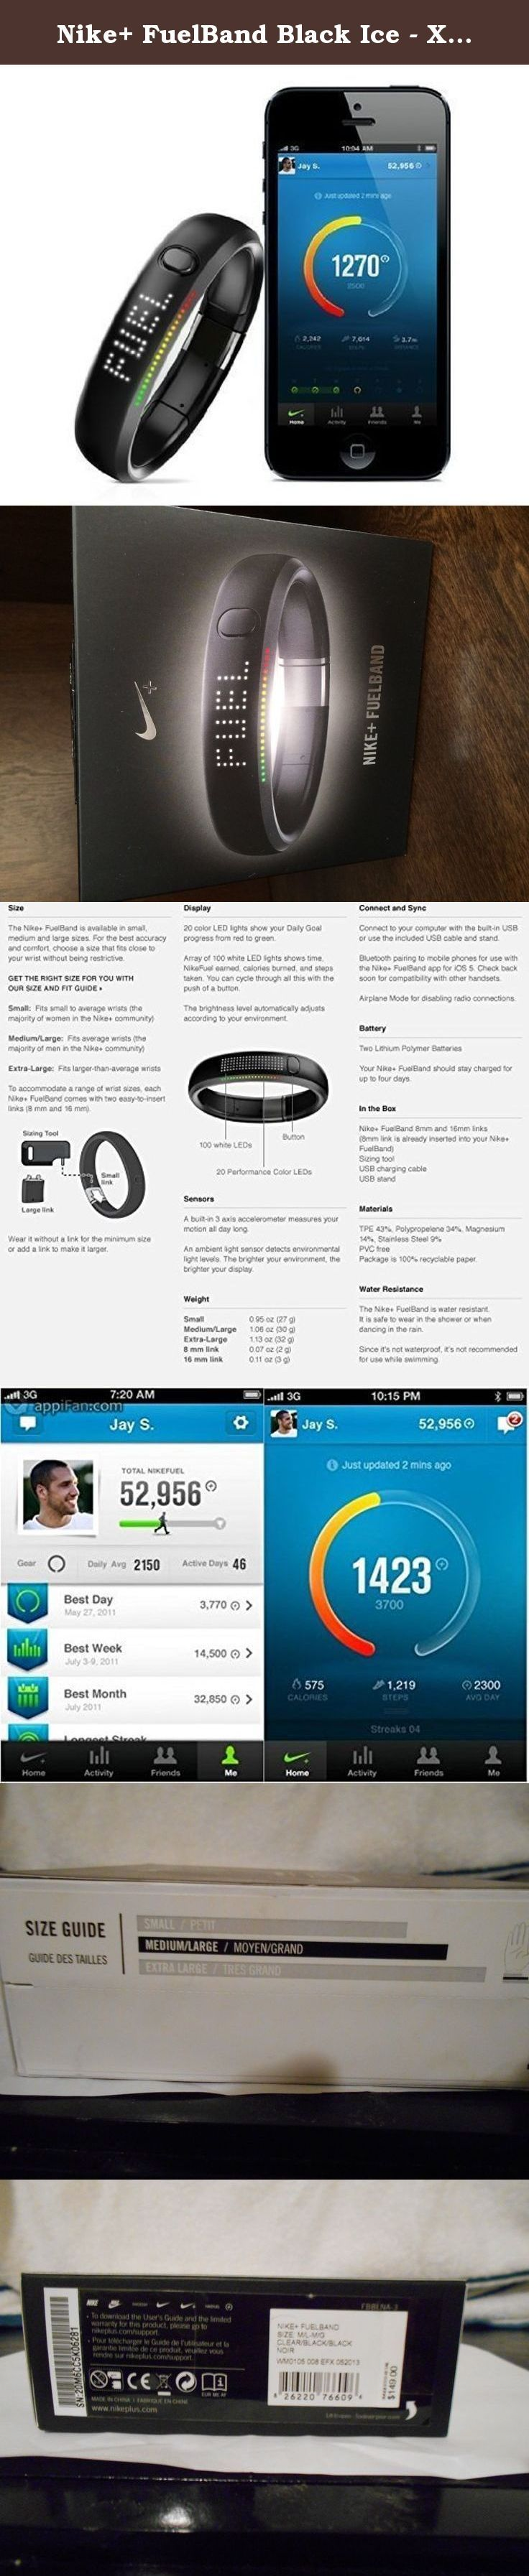 Nike+ FuelBand Black Ice - X-Large (XL). Nike+ FuelBand tracks your activity through a sport-tested accelerometer, then translates every move into NikeFuel. It's also a great watch. Nike+ FuelBand tracks running, walking, dancing, basketball and dozens of everyday activities. How active do you want to be? Set your Daily Goal and Nike+ FuelBand tracks your progress, lighting up from red to green throughout the day. Get to green and you've hit your goal. With the touch of a button you can...